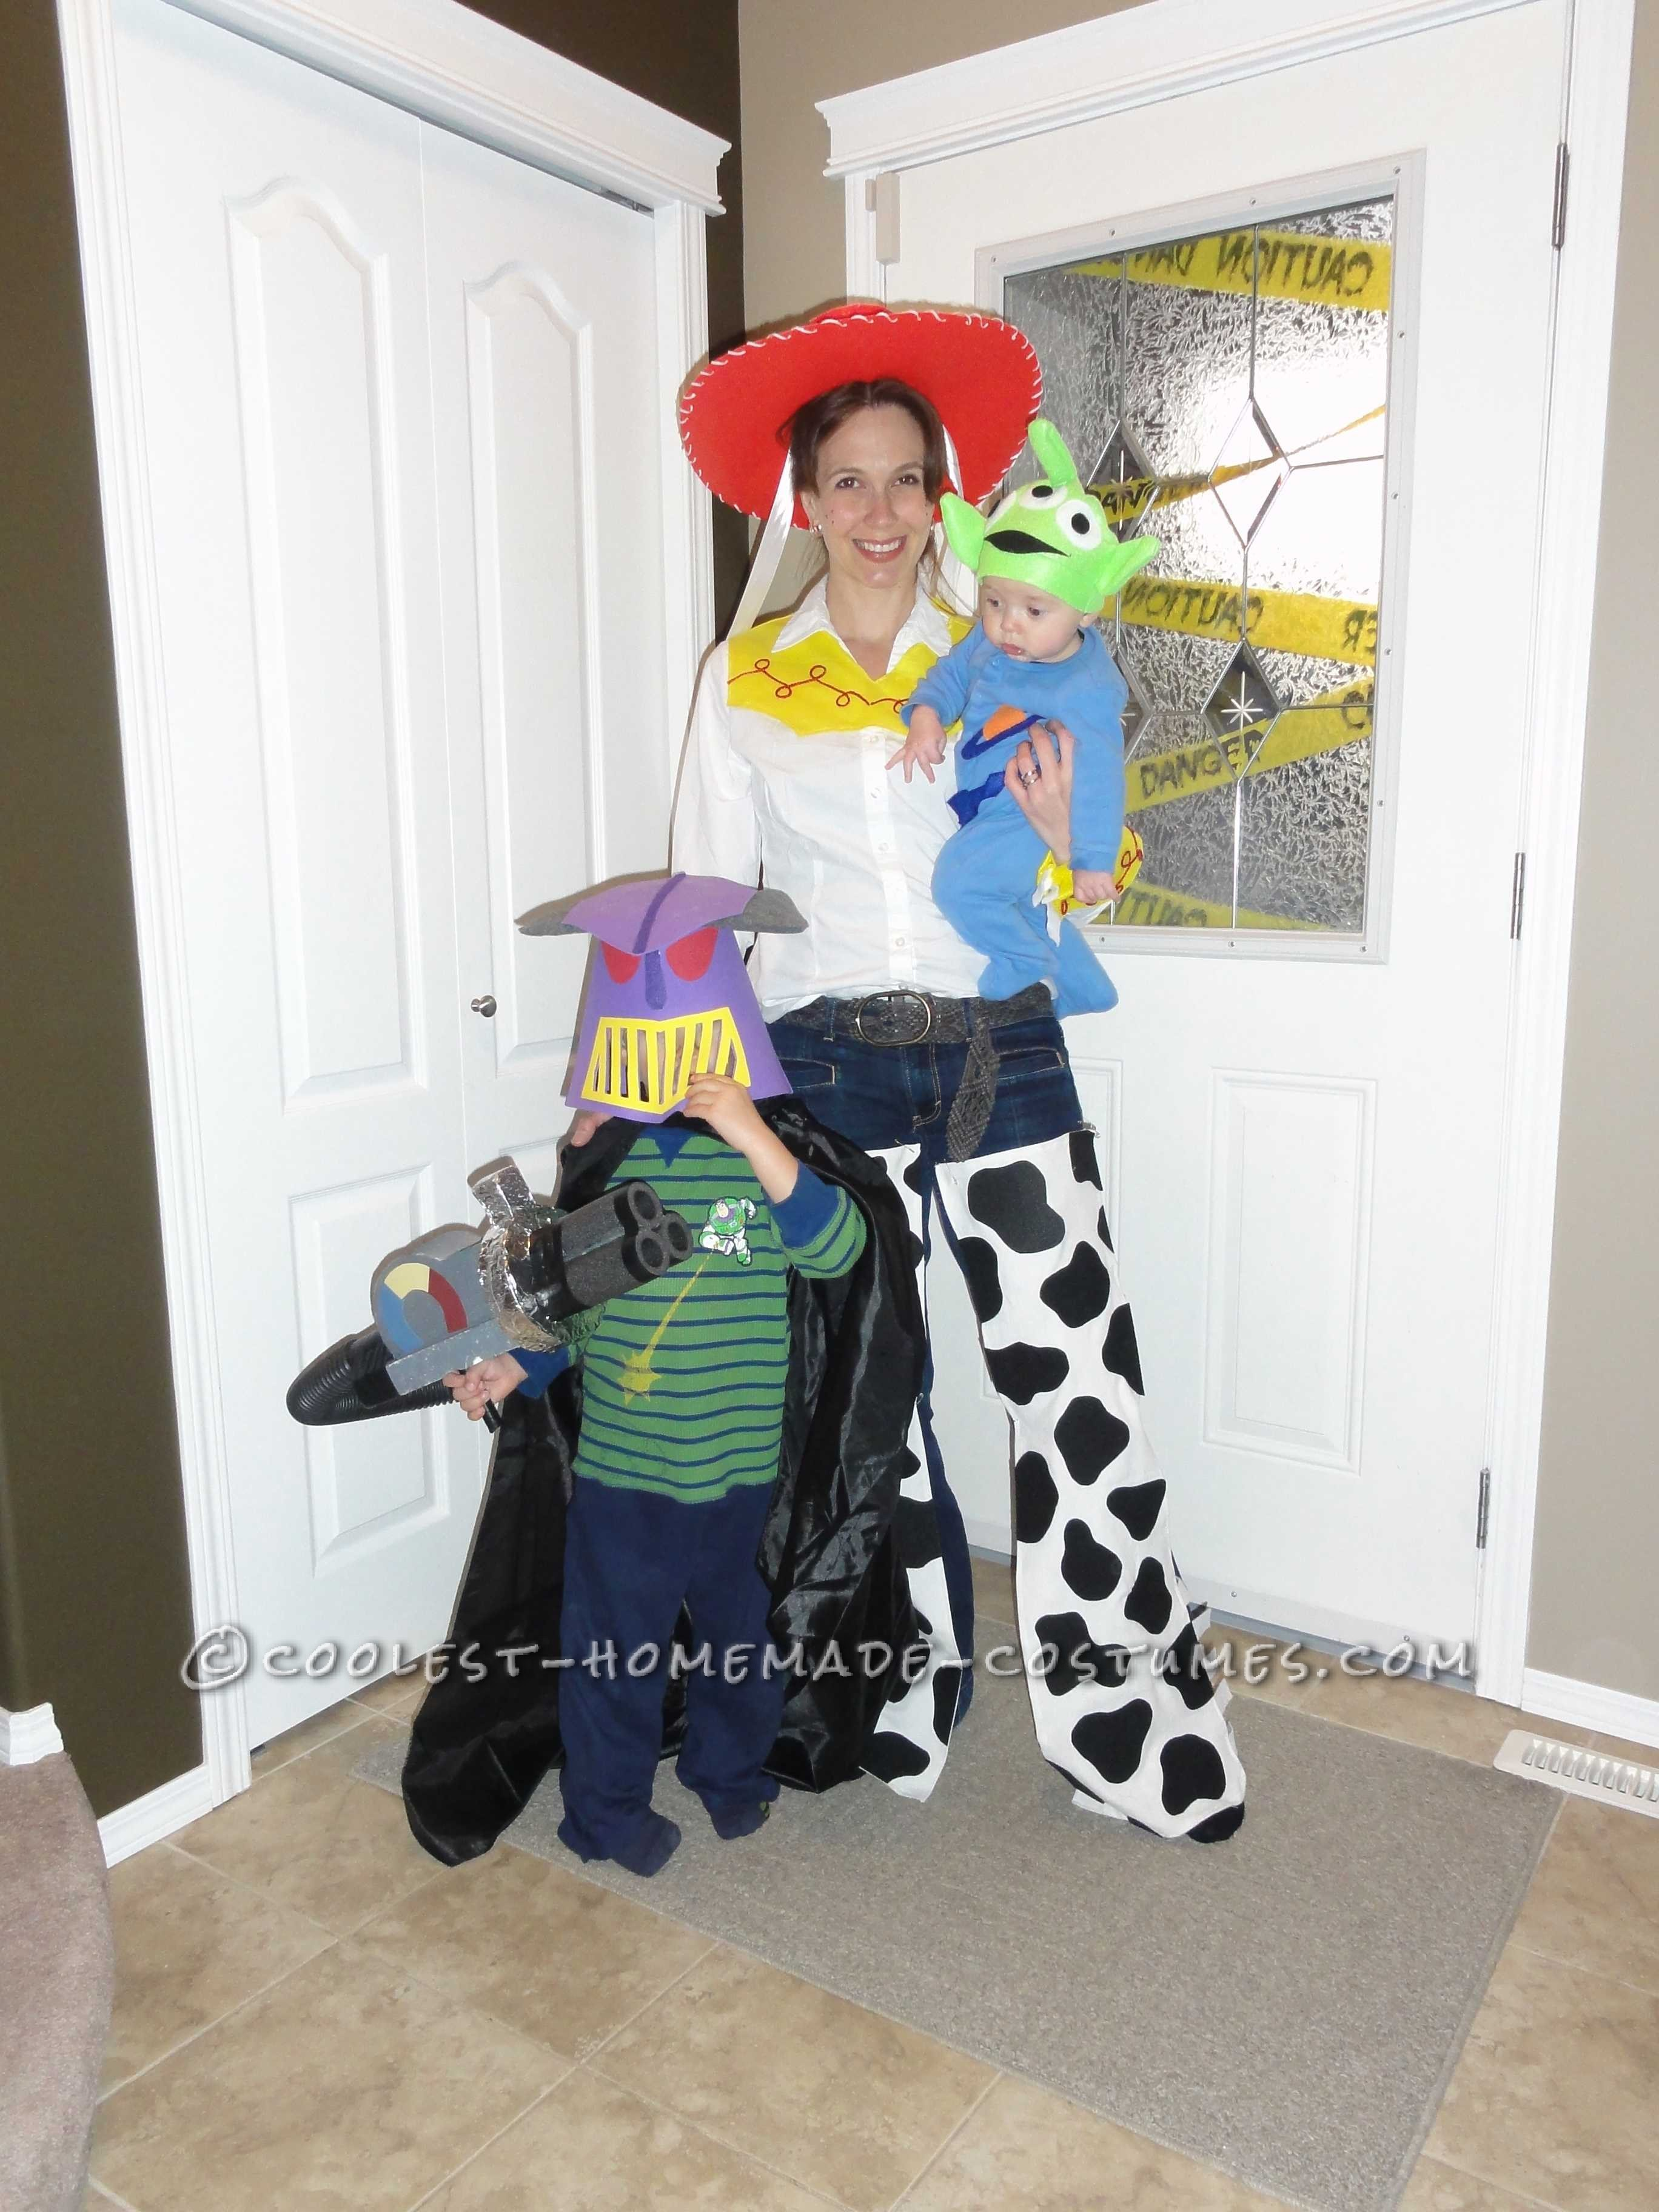 We decided to do a toy story theme last year for Halloween.  My youngest dressed up as the alien. His costumer was made from a blue slee